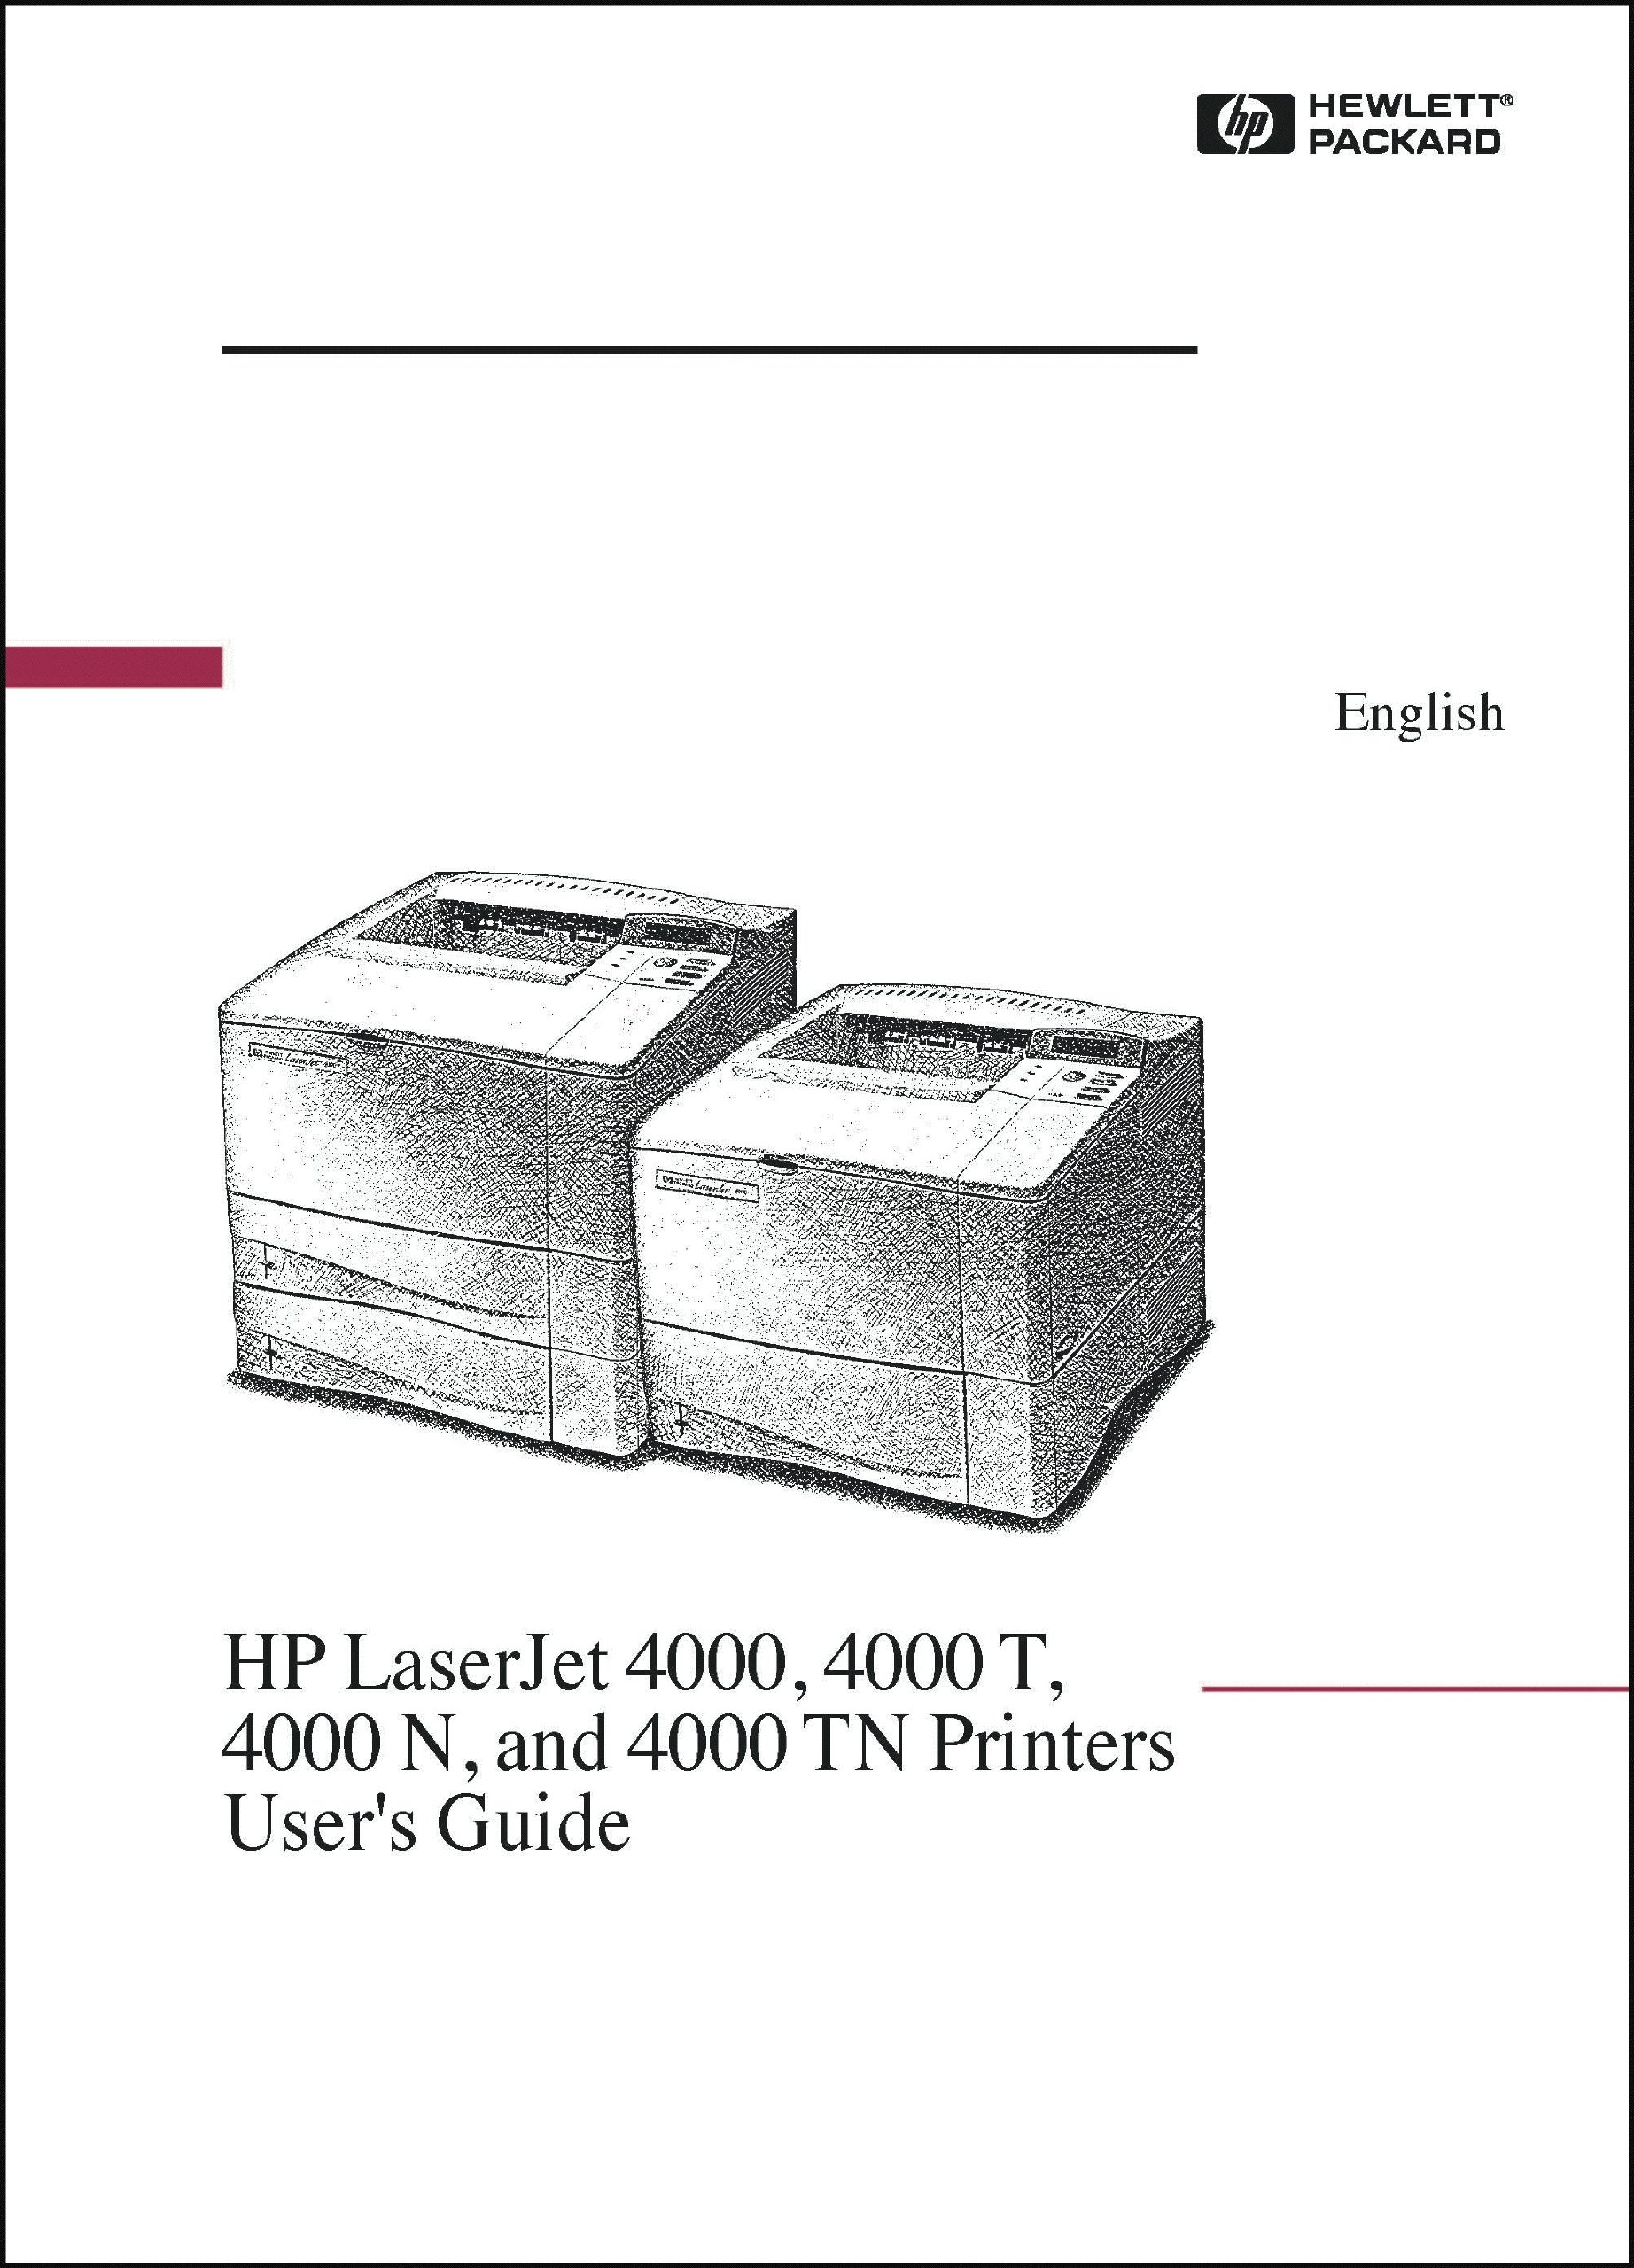 hp laserjet printer 4000 4050 194 page user s guide manual hp rh amazon com Where to Find Model Number HP LaserJet 4000 Where to Find Model Number HP LaserJet 4000